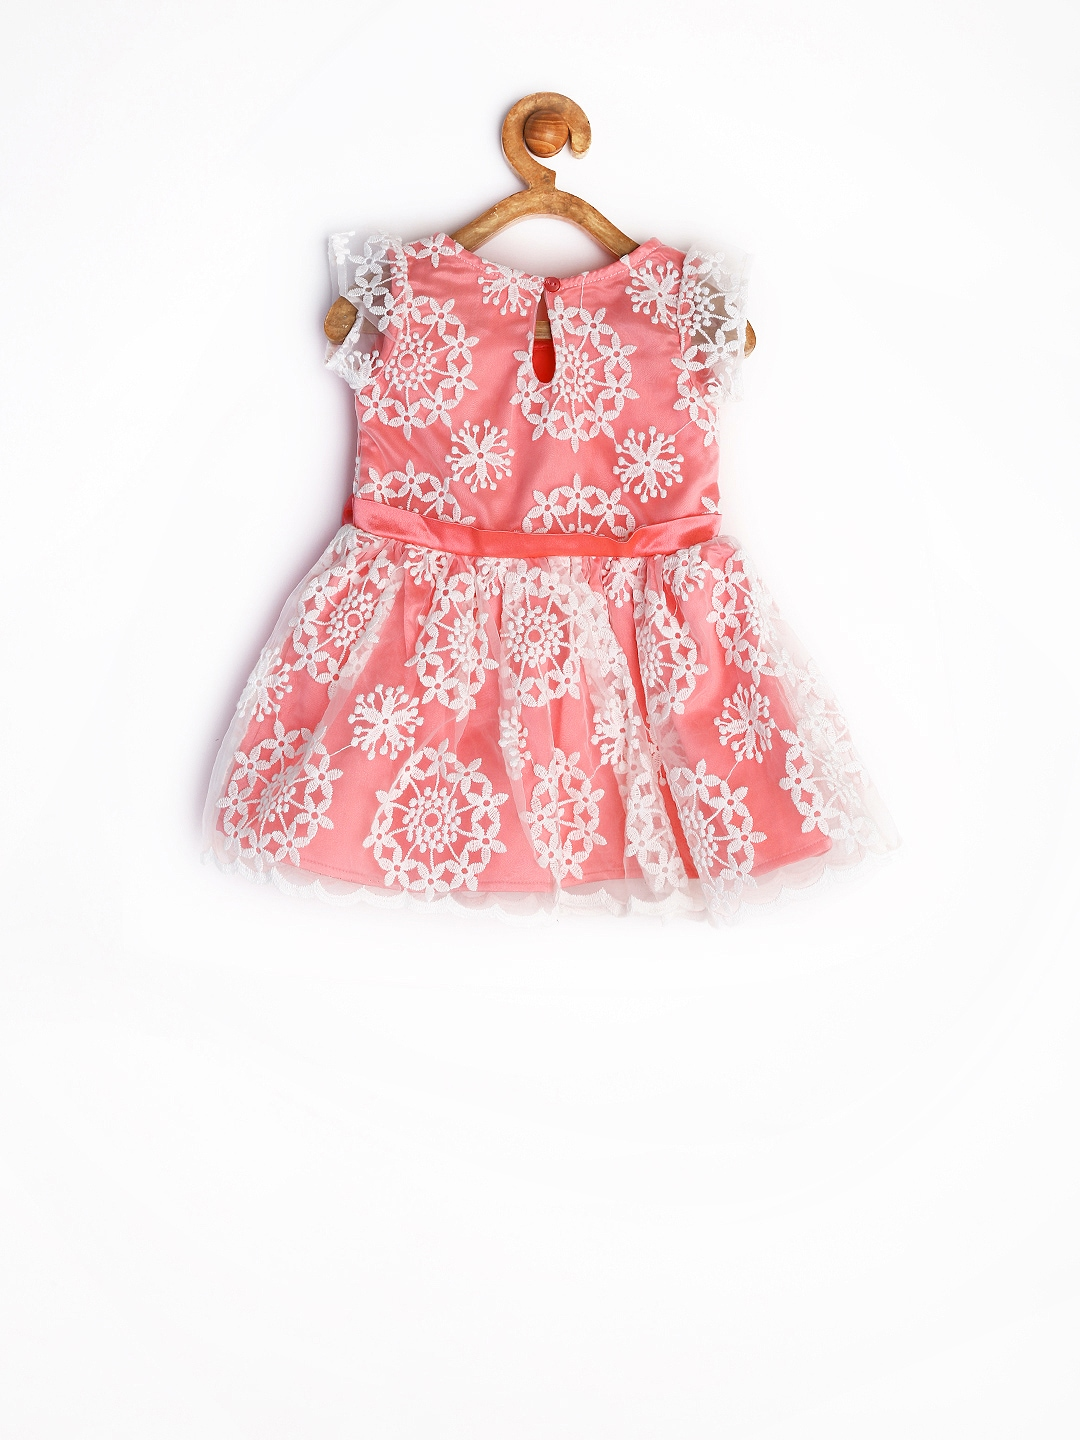 Myntra Yellow Kite Baby Girls Coral Pink Fit & Flare Dress